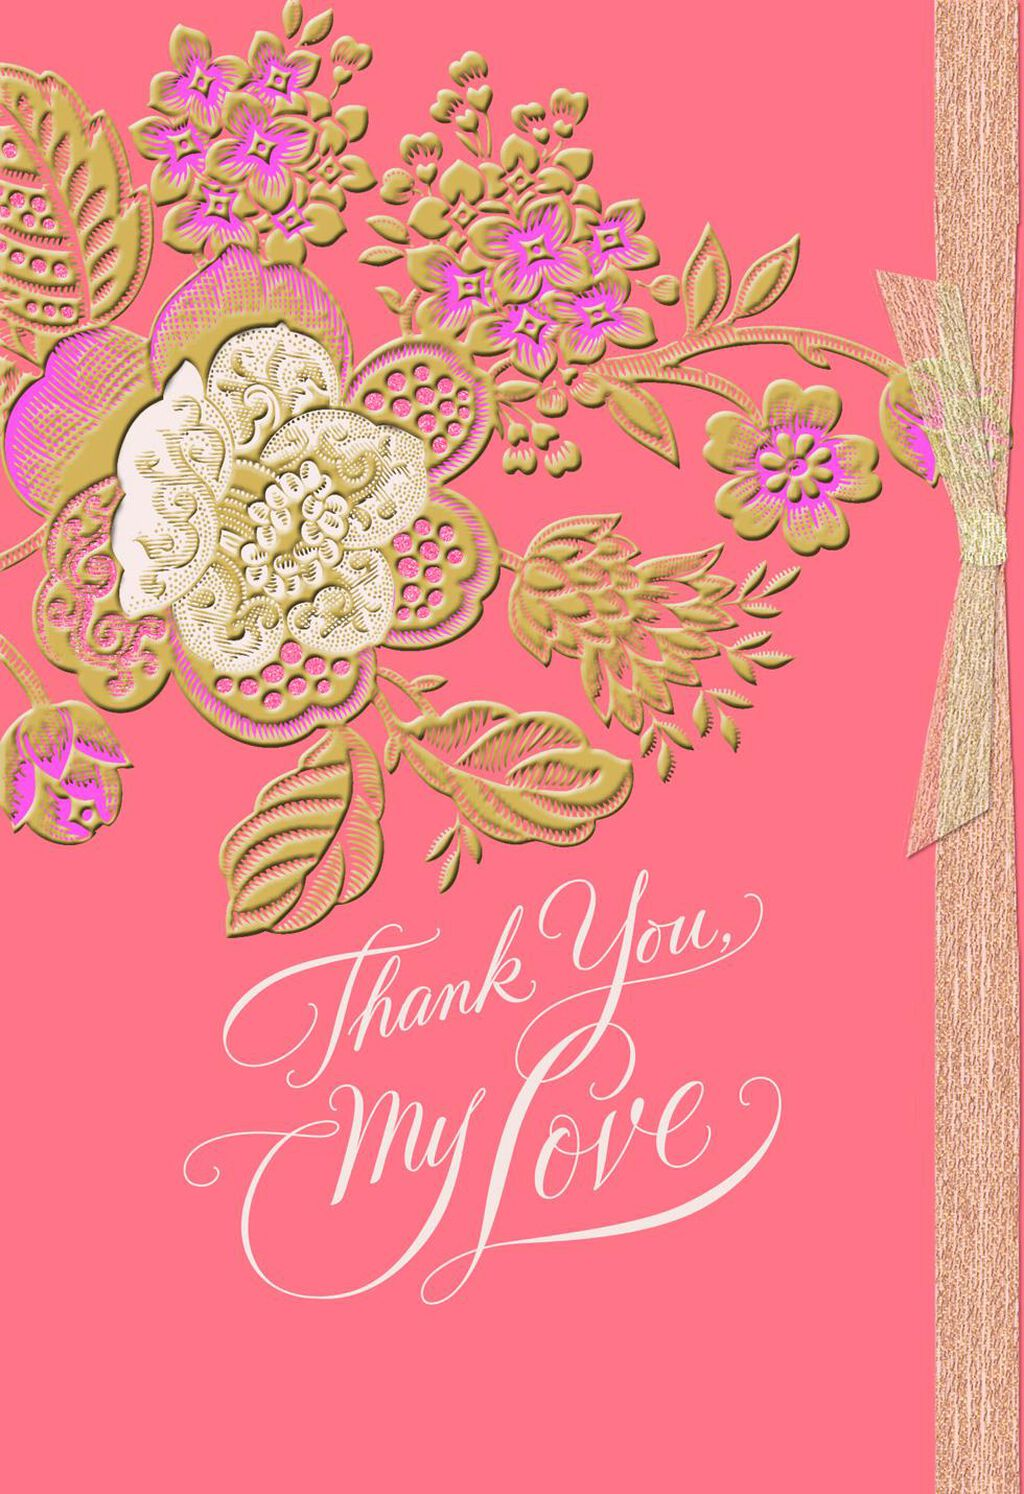 Thank You My Love Mothers Day Card For Wife Greeting Cards